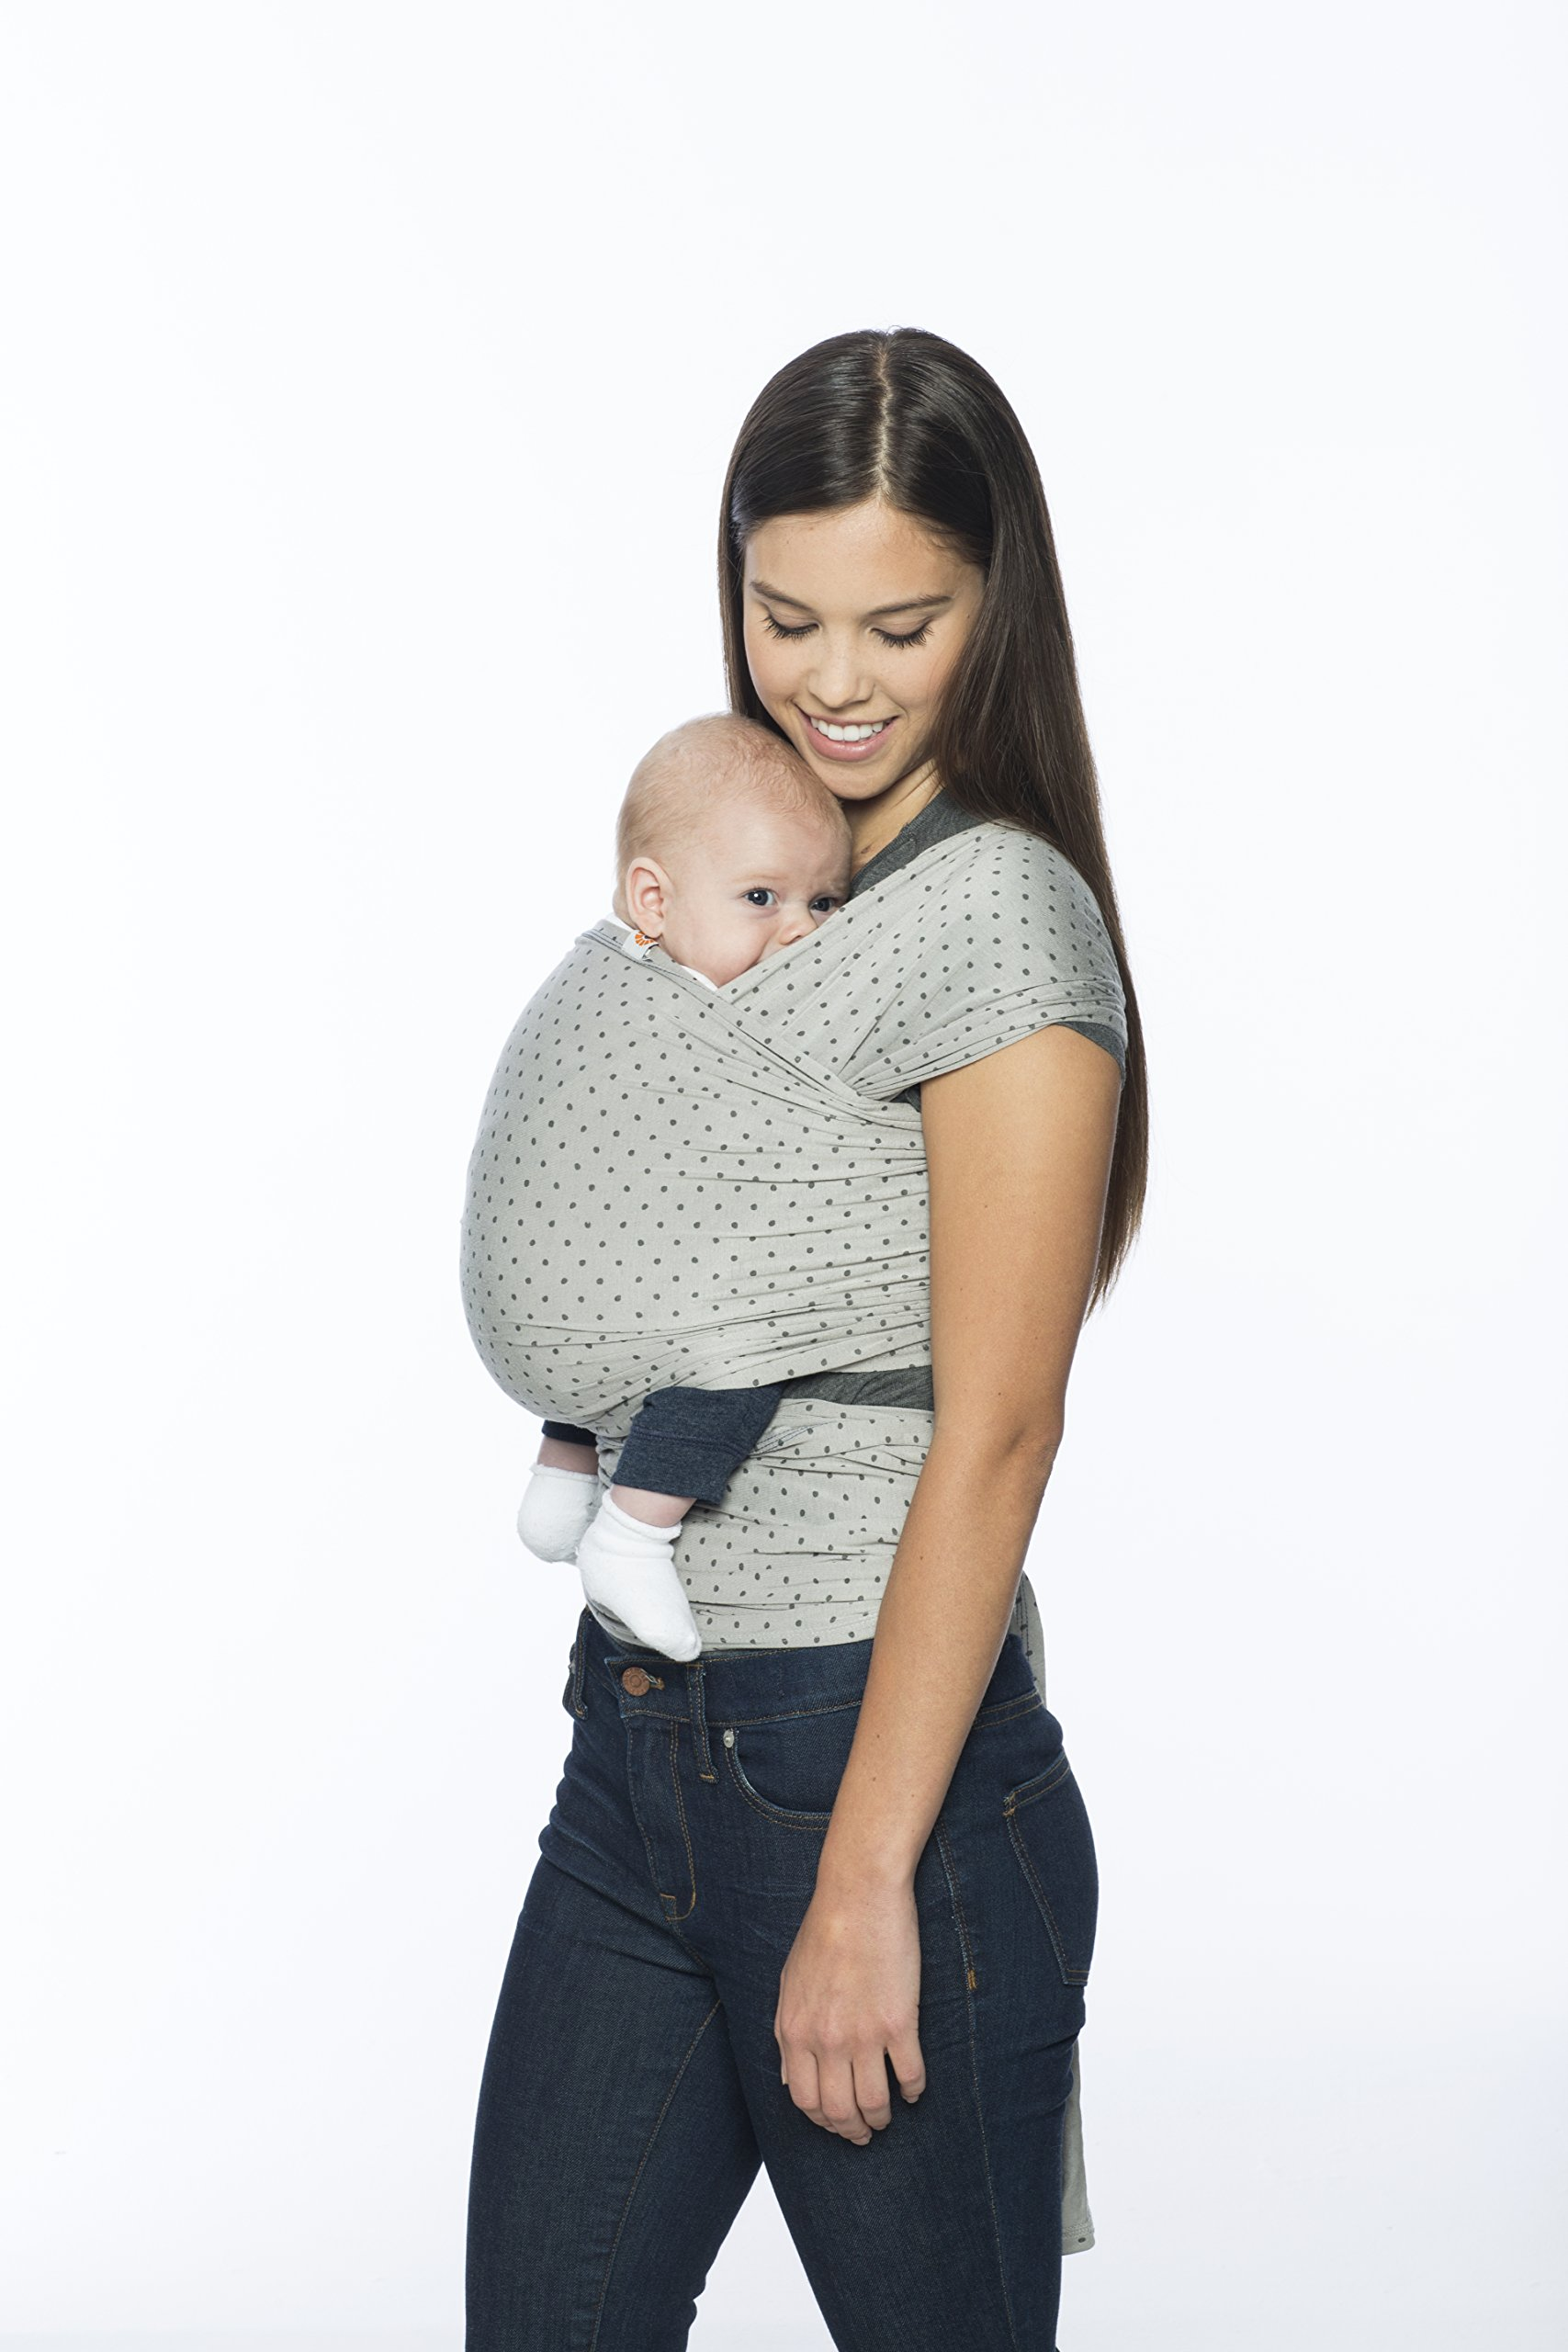 Ergobaby Baby Wrap Carrier for Newborn to Toddler up to 11kg, Pearl Grey Baby Sling from Birth Breathable Stretchy made from 100% Viscose, Unisex Ergobaby Ergo baby stands by our products so you can carry your precious cargo with confidence.  If you find a manufacturing or material defect, Ergo baby will replace your carrier or part at no charge. That's the Ergo Promise. BUILT-IN CARRYING POUCH: Folds into integrated pocket for easy storage of your baby wrap on the go LIGHTWEIGHT and SOFT: Breathable and durable fabric, soft on baby's skin 2